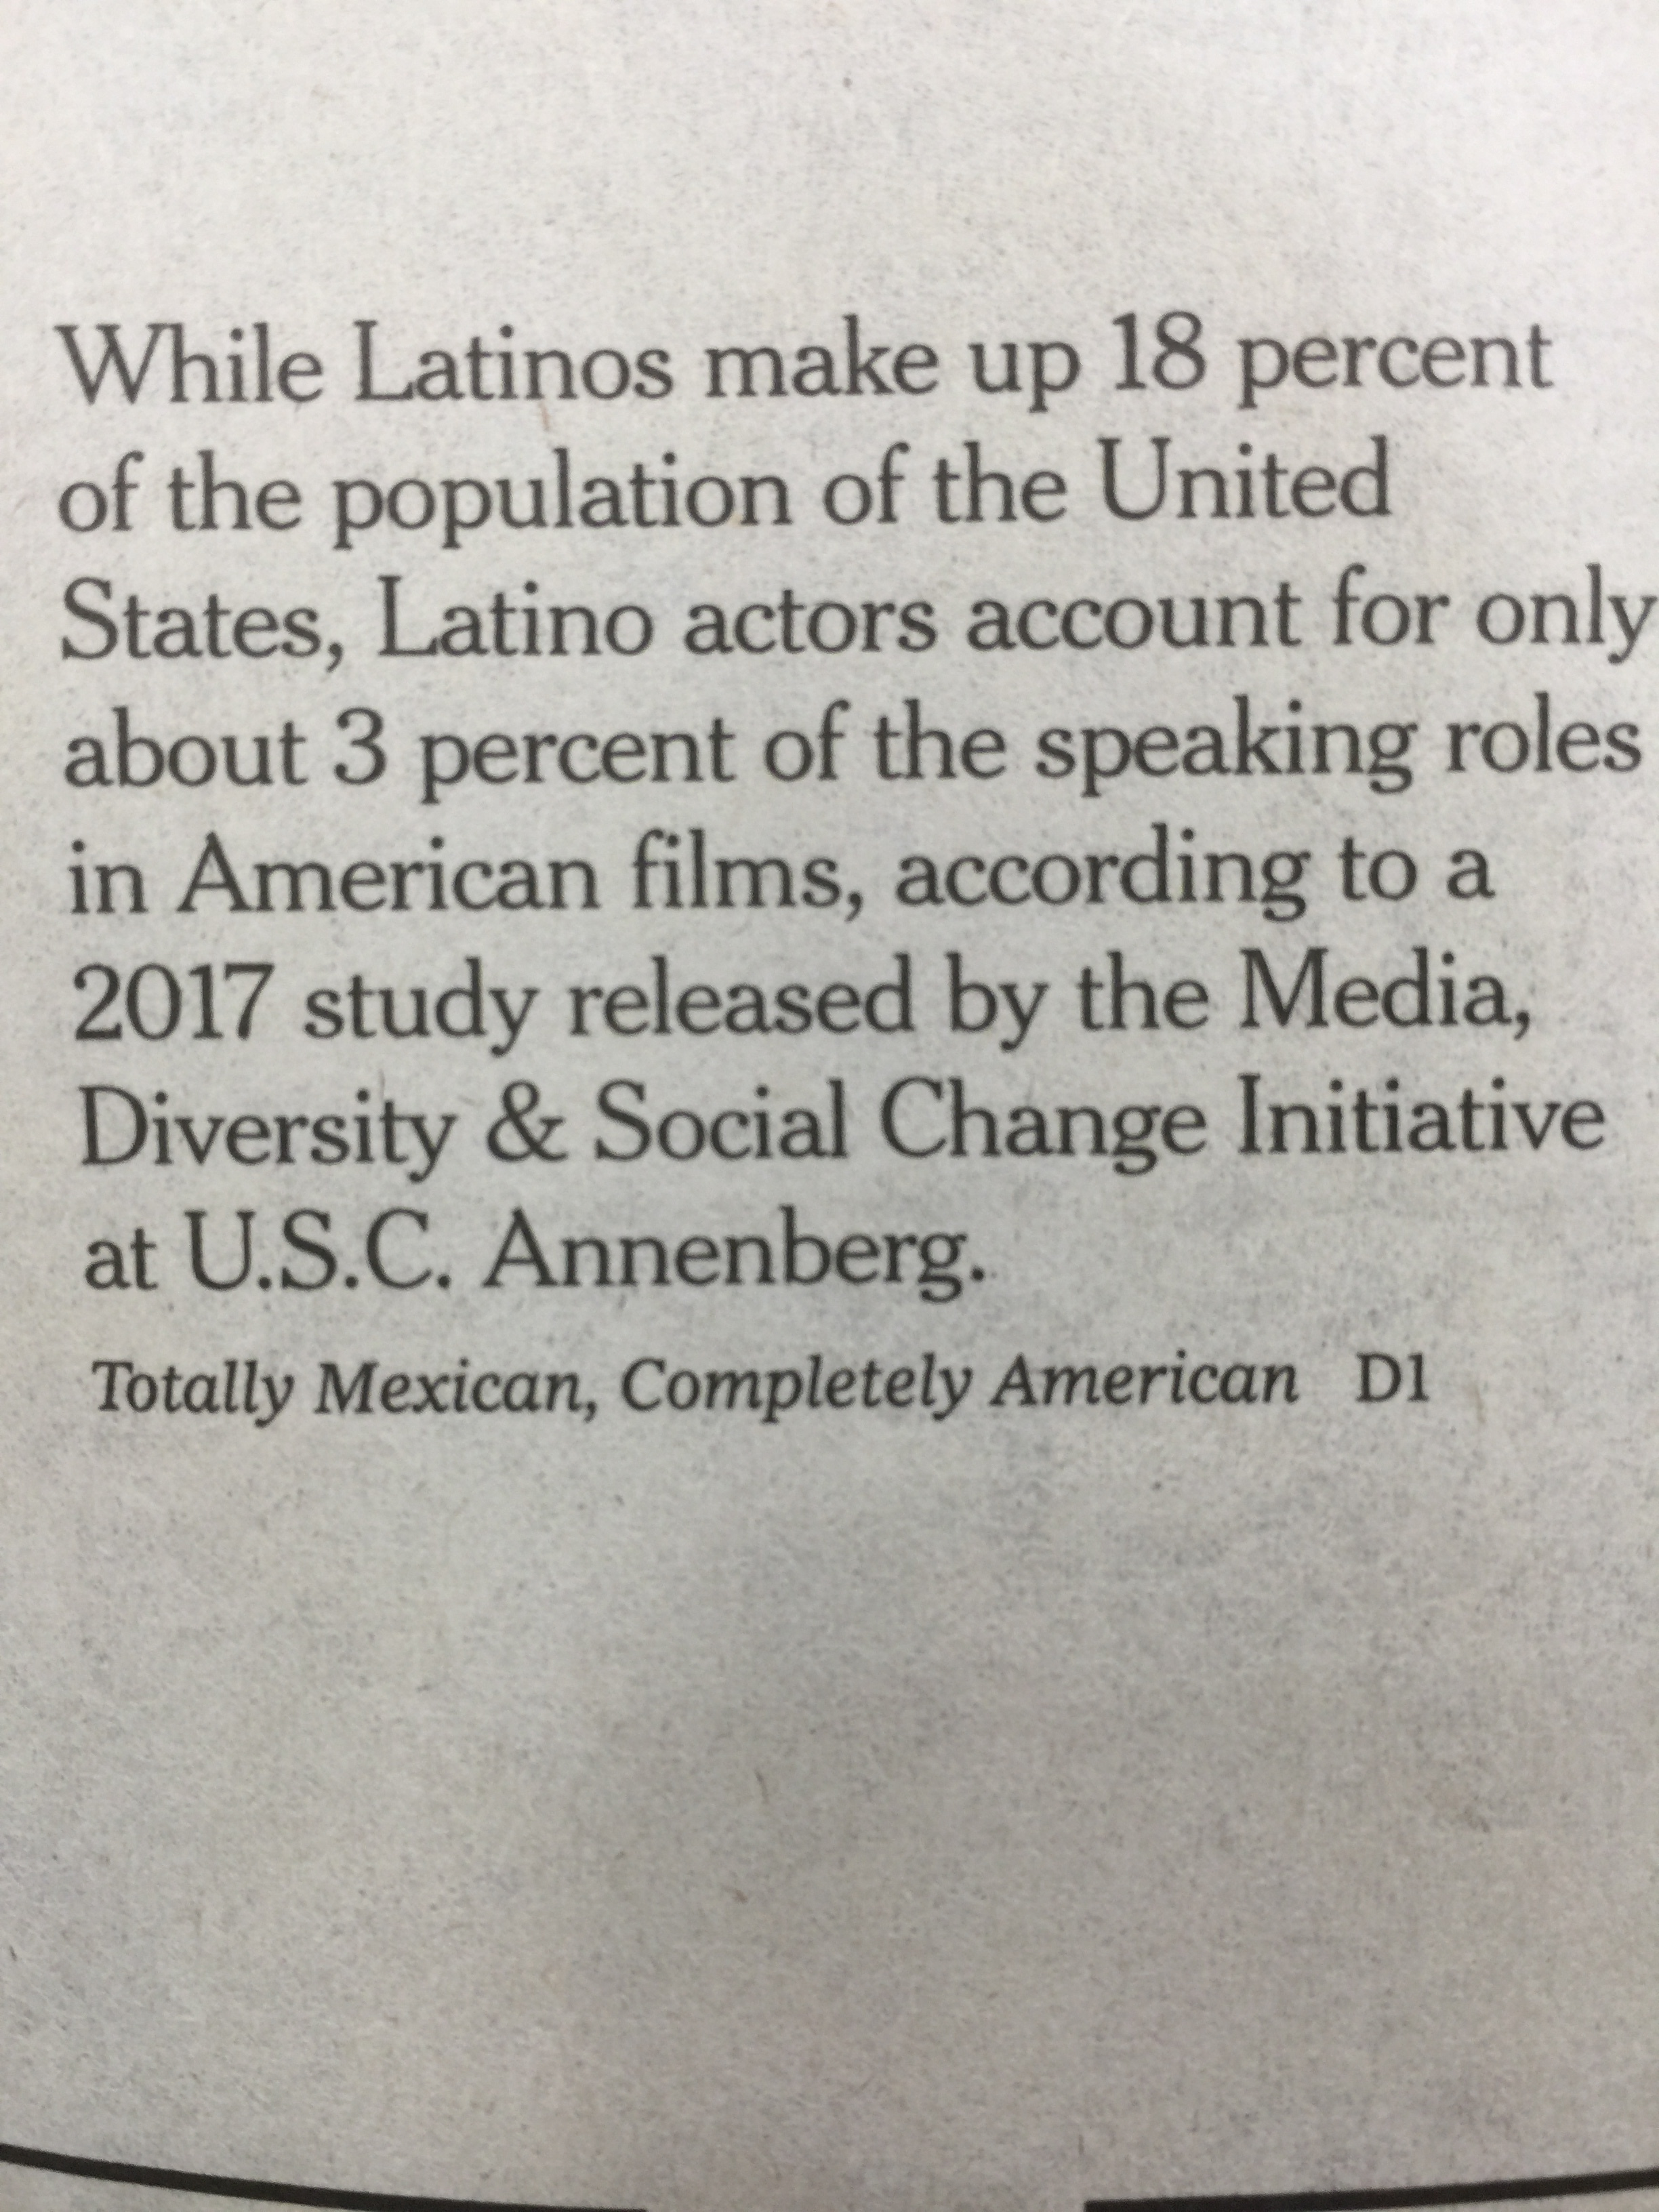 According to a 2017 study released by the Media, Diversity, and Social Change Initiative at U.S.C. Annenberg.